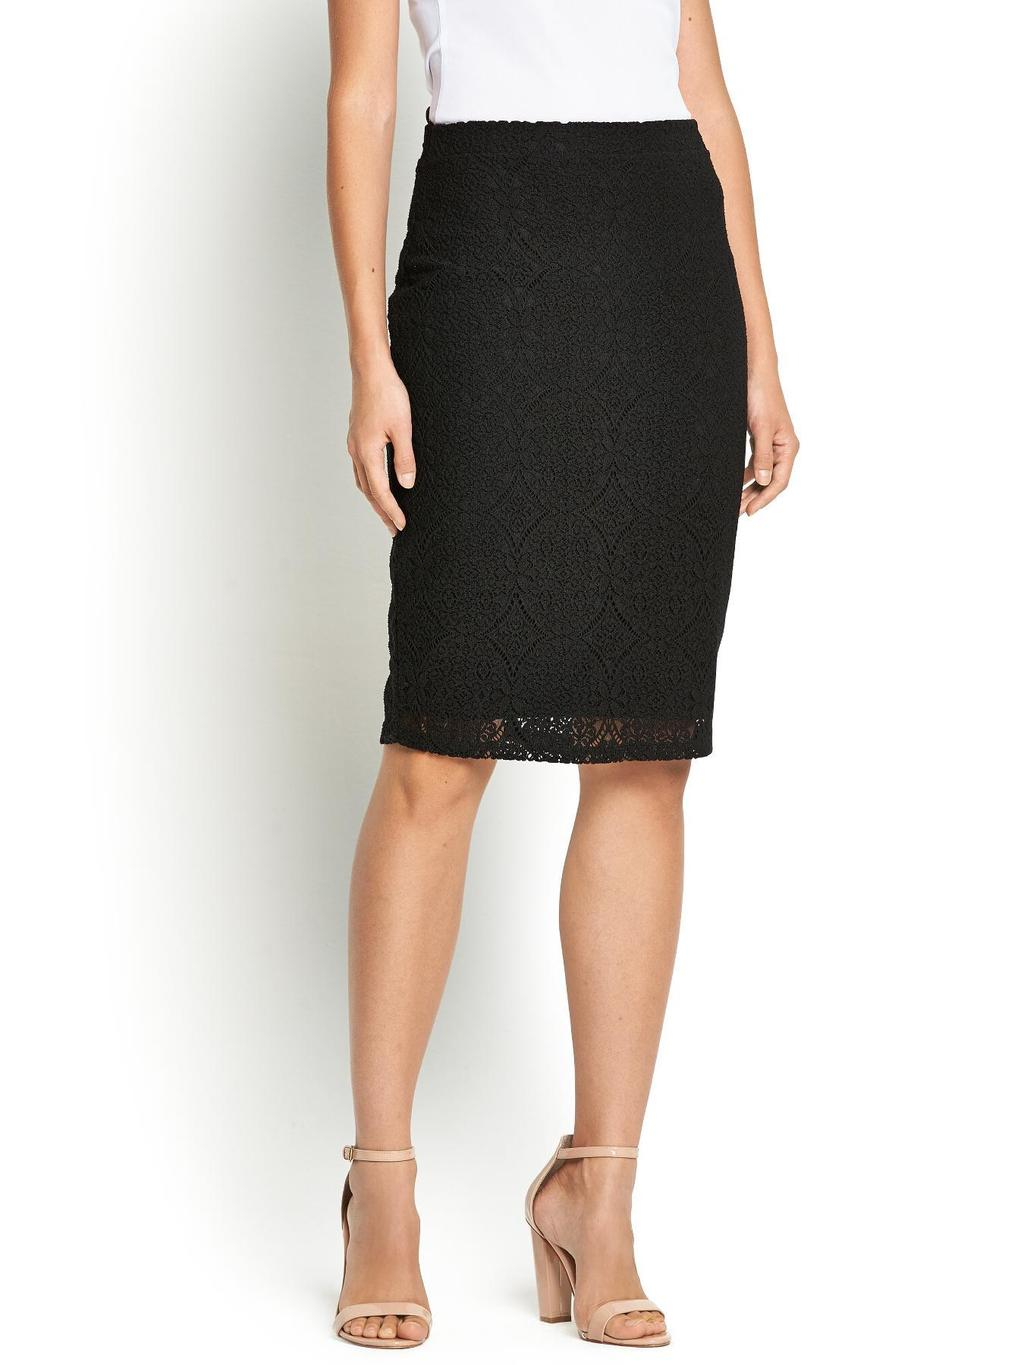 Lace Skirt, Black - style: pencil; fit: tailored/fitted; waist: high rise; predominant colour: black; occasions: evening, occasion; length: on the knee; fibres: viscose/rayon - stretch; texture group: lace; pattern type: fabric; pattern: patterned/print; embellishment: lace; season: s/s 2014; wardrobe: event; embellishment location: all over